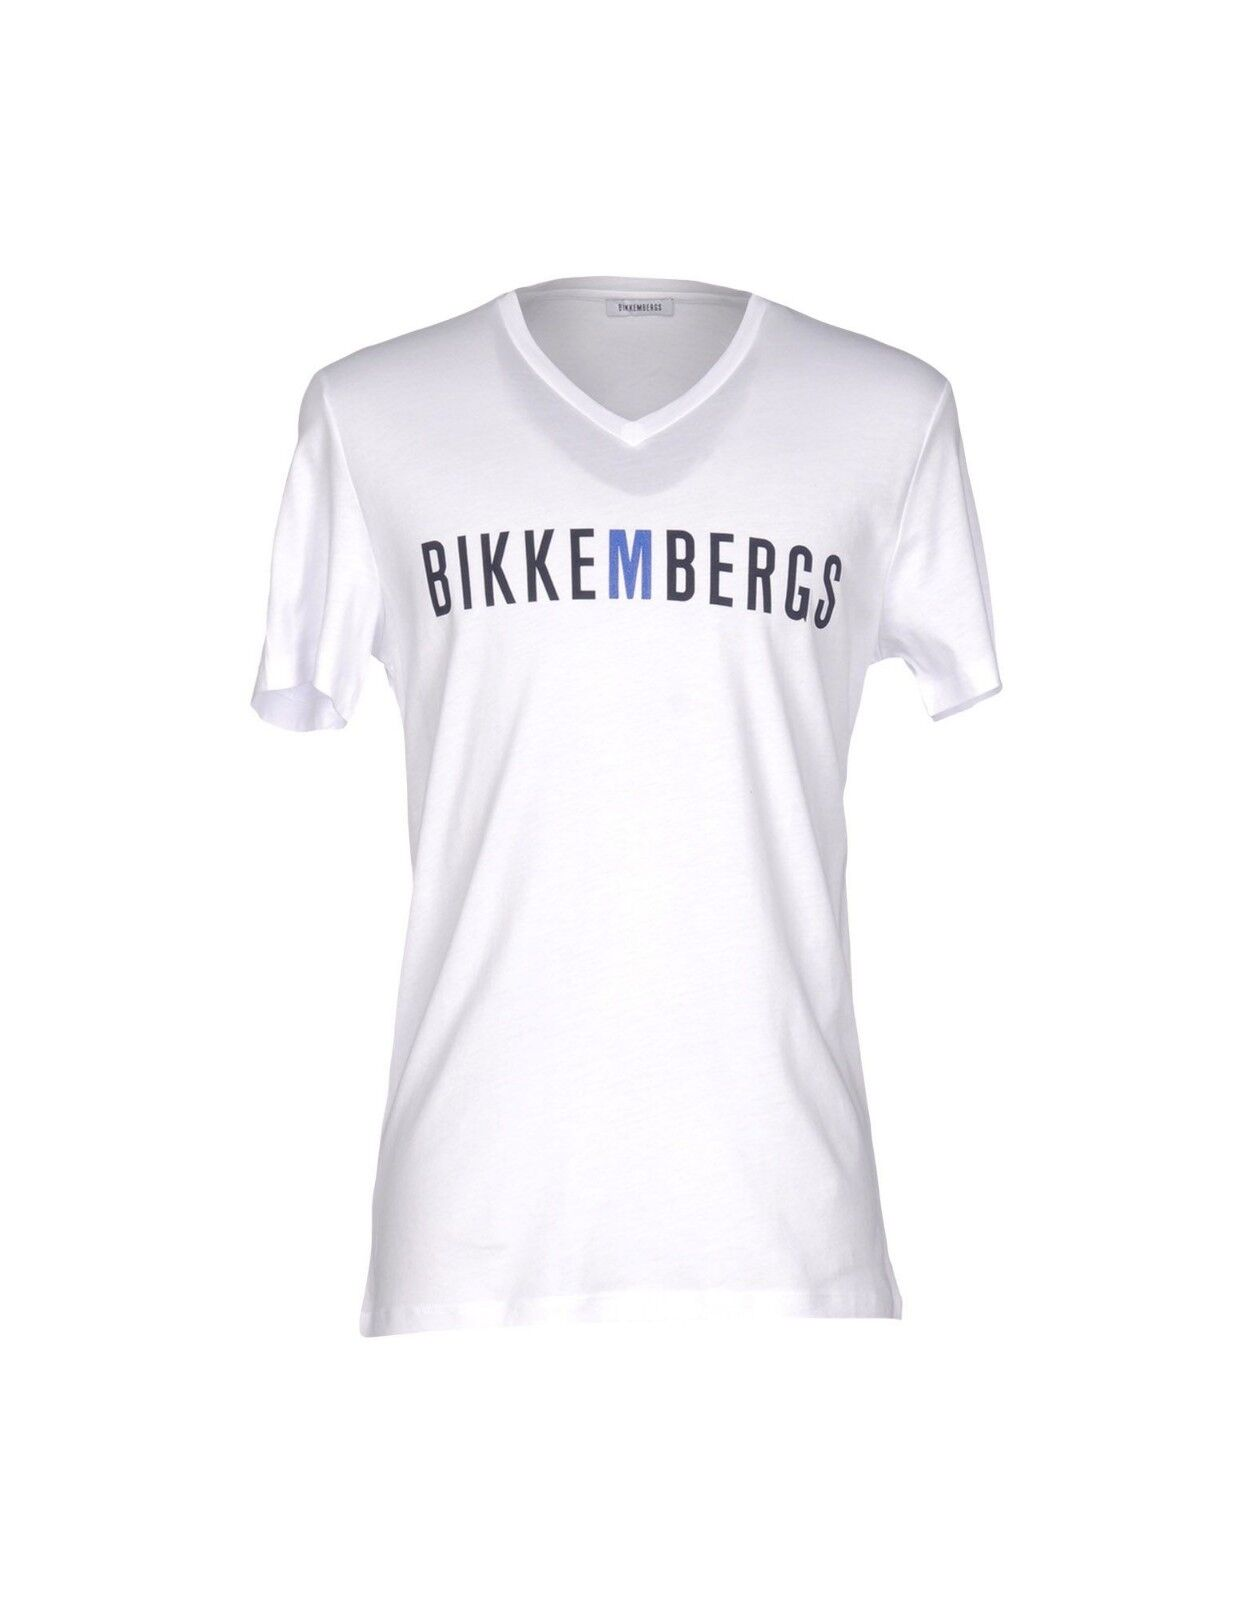 Authentic Rare DIRK BIKKEMBERGS Men's Short Sleeve Casual Logo T-shirt Tee